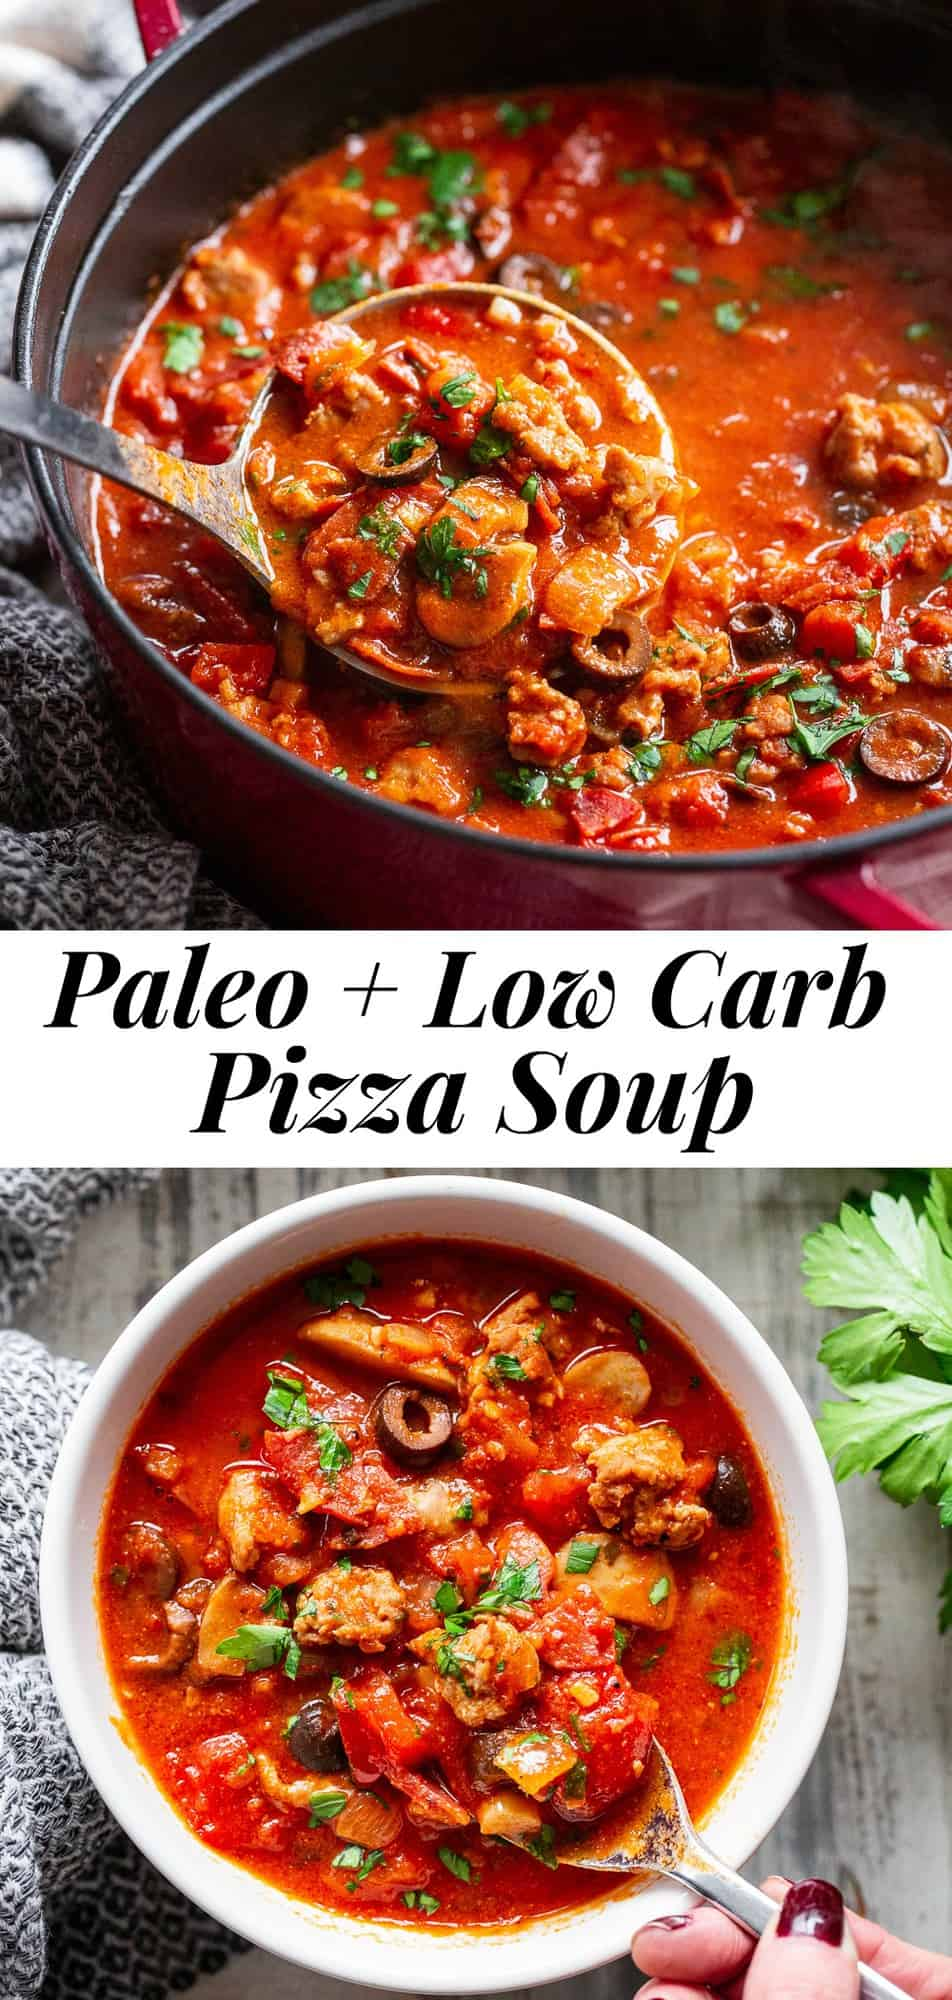 This low carb and paleo pizza soup is hearty, comforting and packed with all your favorite pizza toppings like sausage, peppers, onions, mushrooms, olives and pepperoni. Add broth and your favorite marinara sauce and you have a healthy meal that tastes just like pizza but without the carbs and dairy! #whole30 #paleo #keto #cleaneating